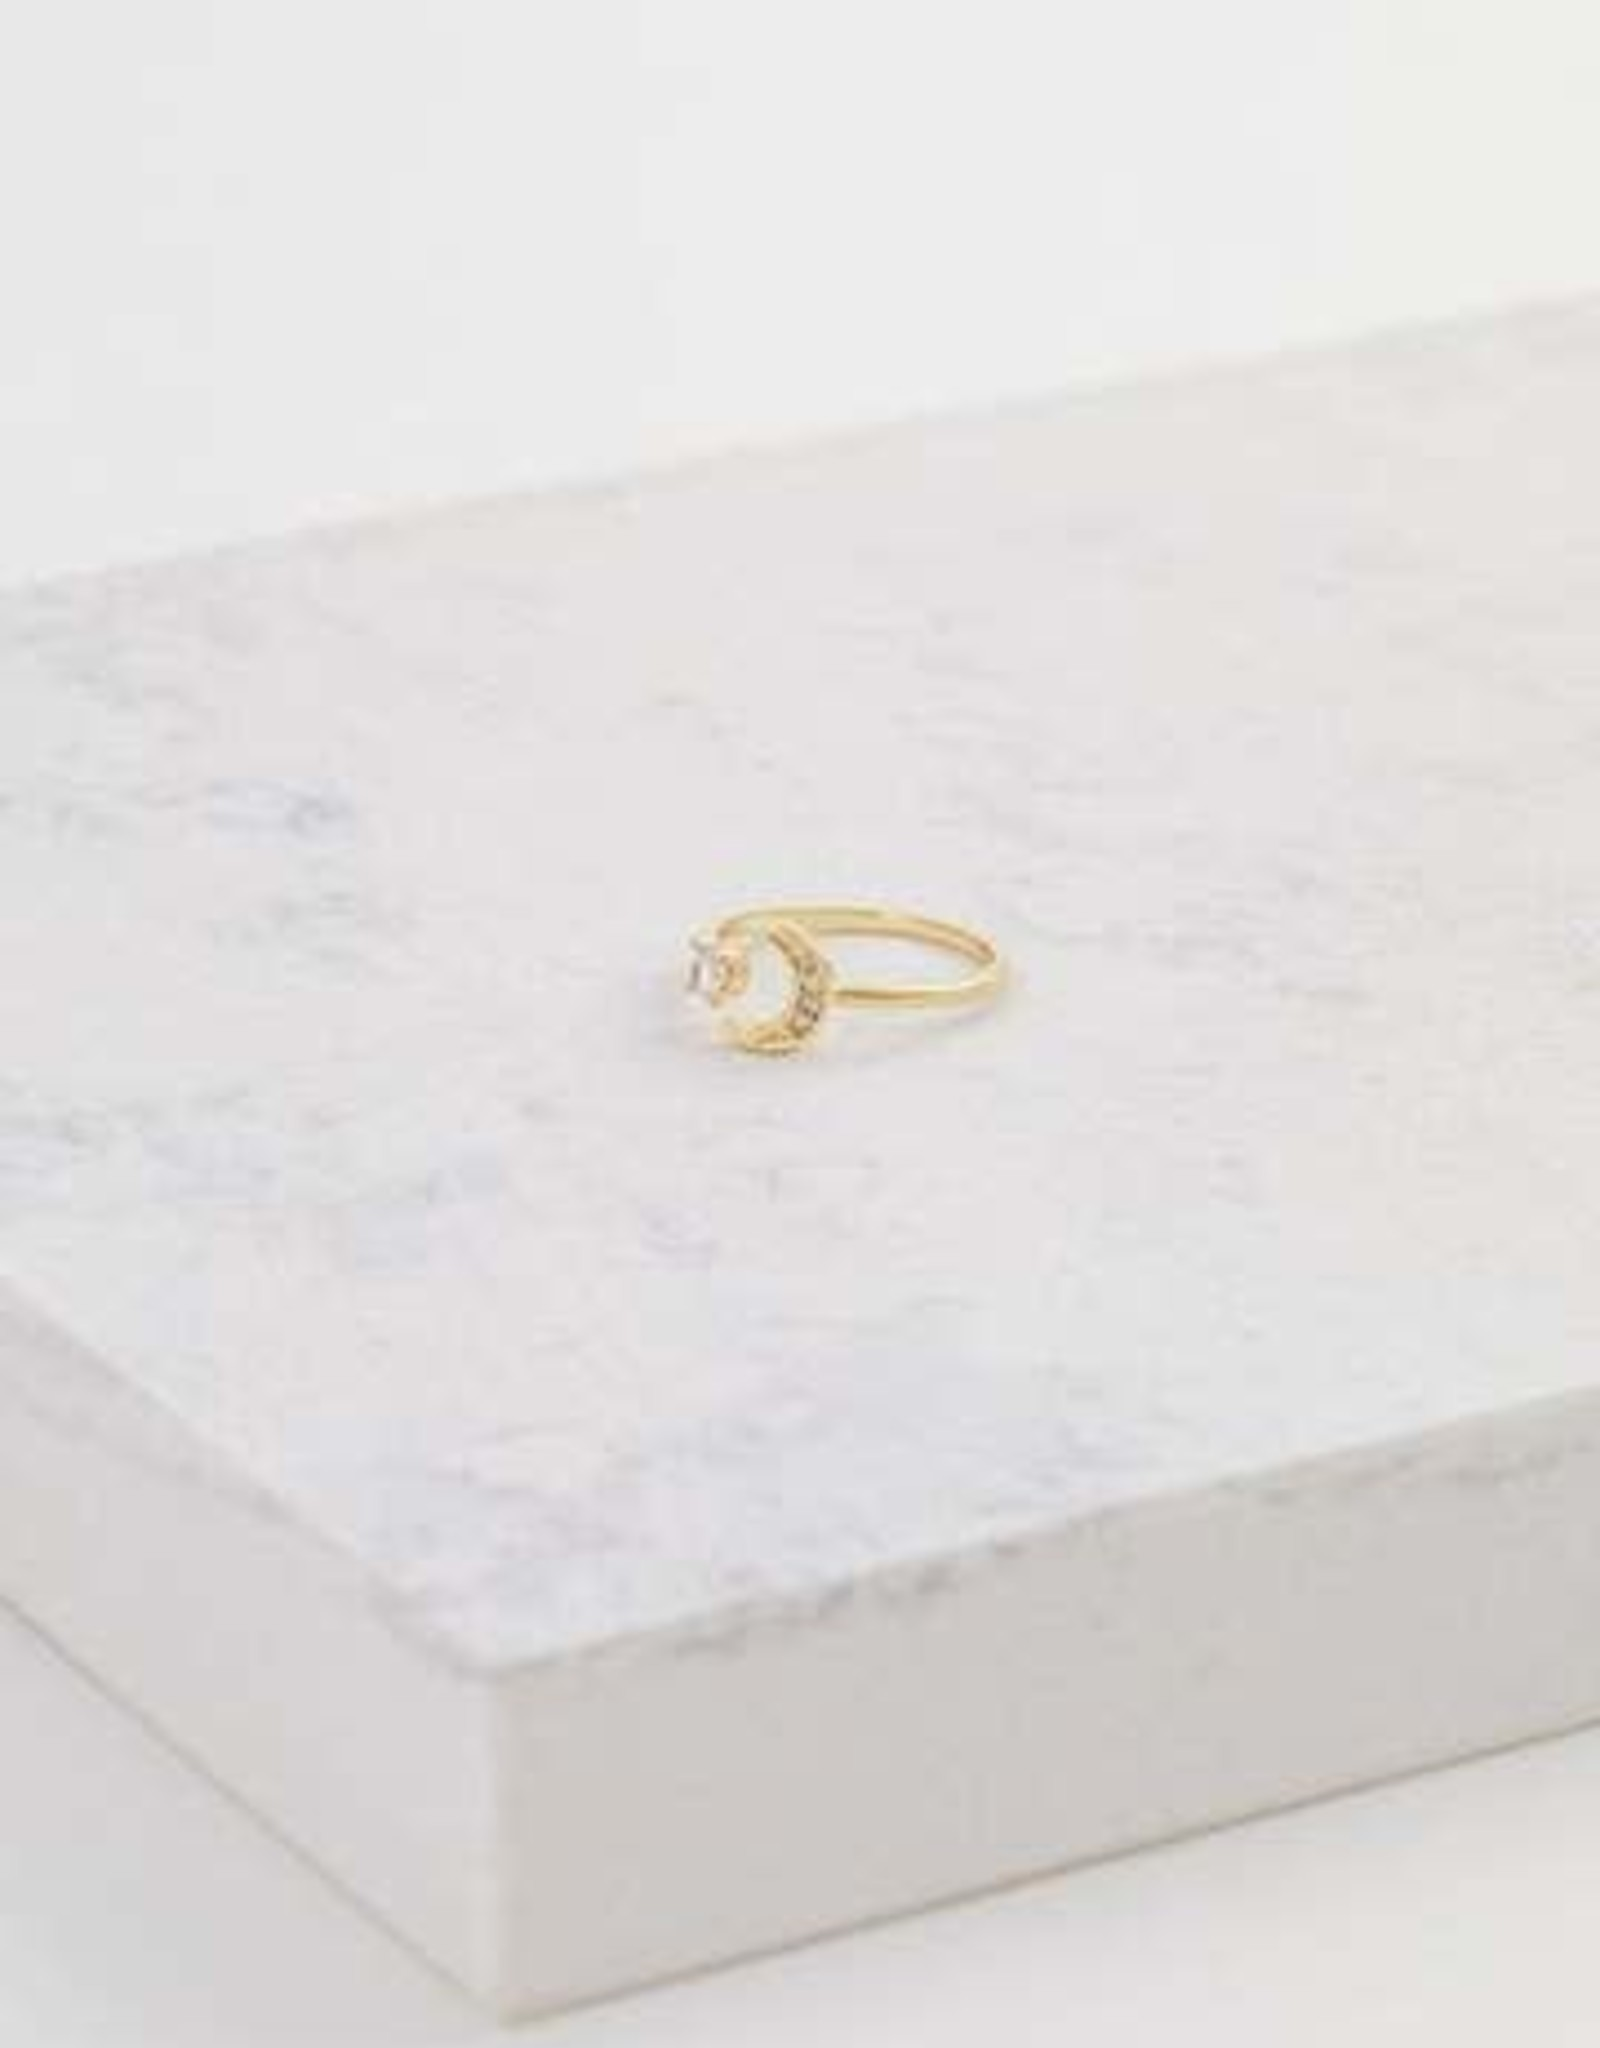 Ring, Moonlit Gold, Brass w/ Gold Plating